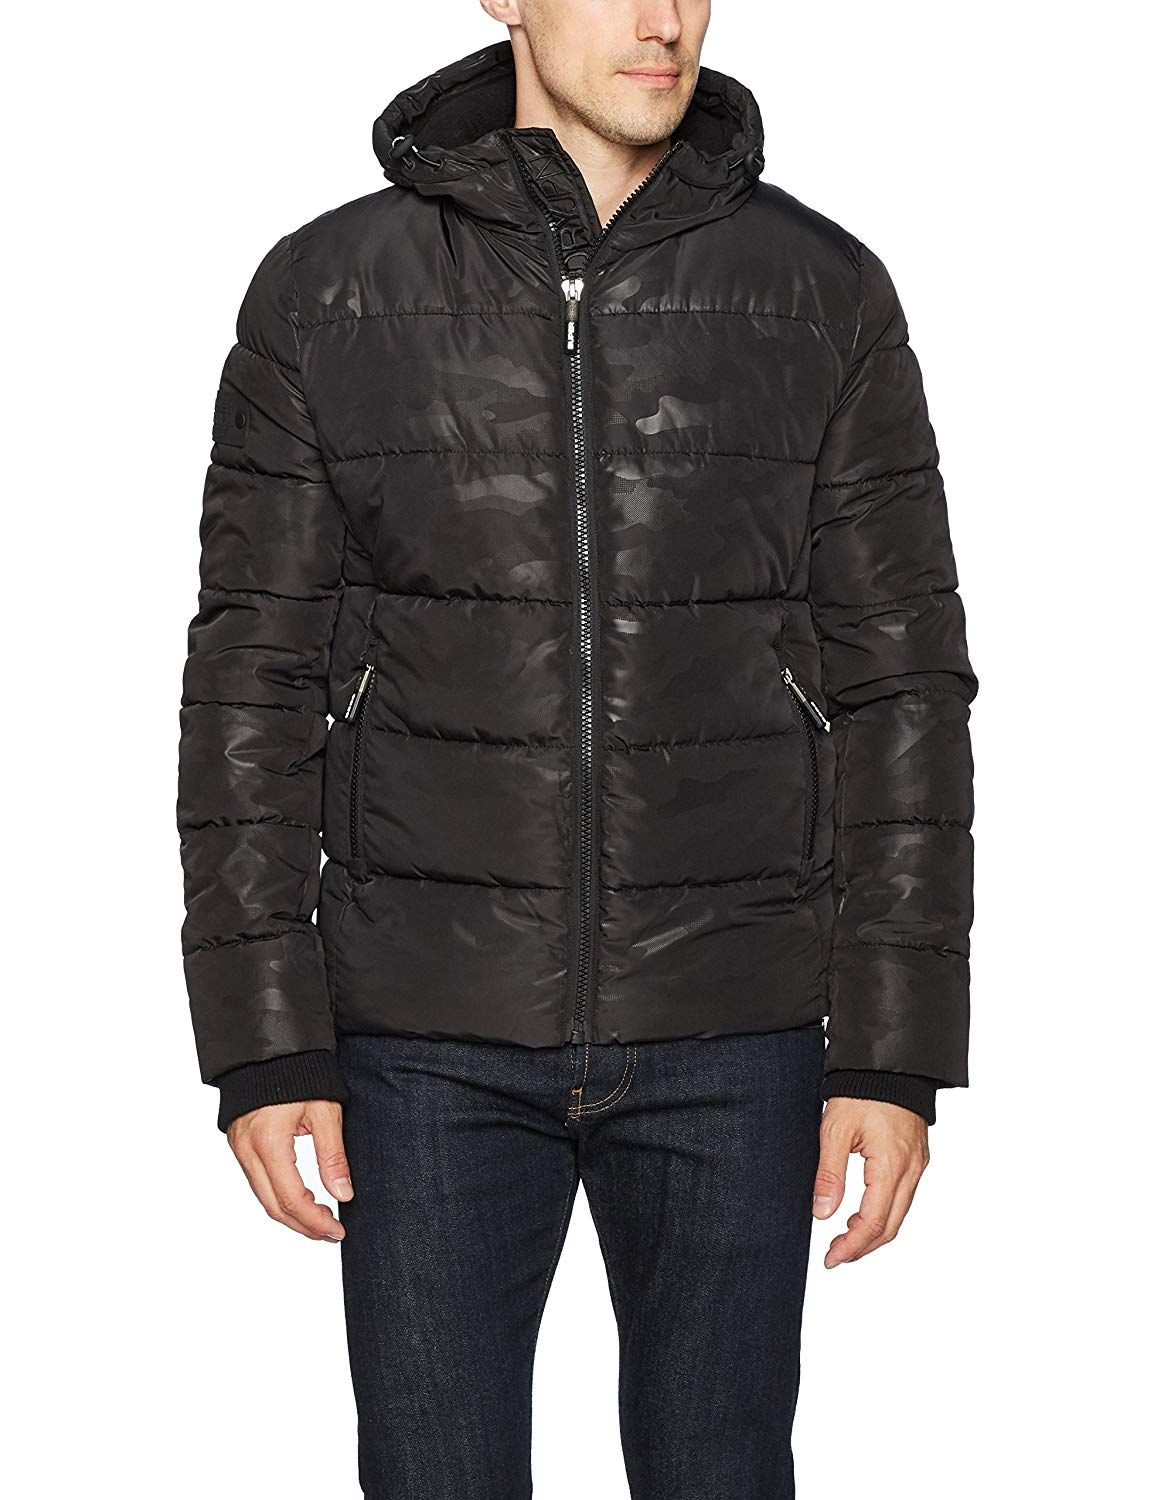 Superdry Sports Puffer Jacket Black Jackets, Mens